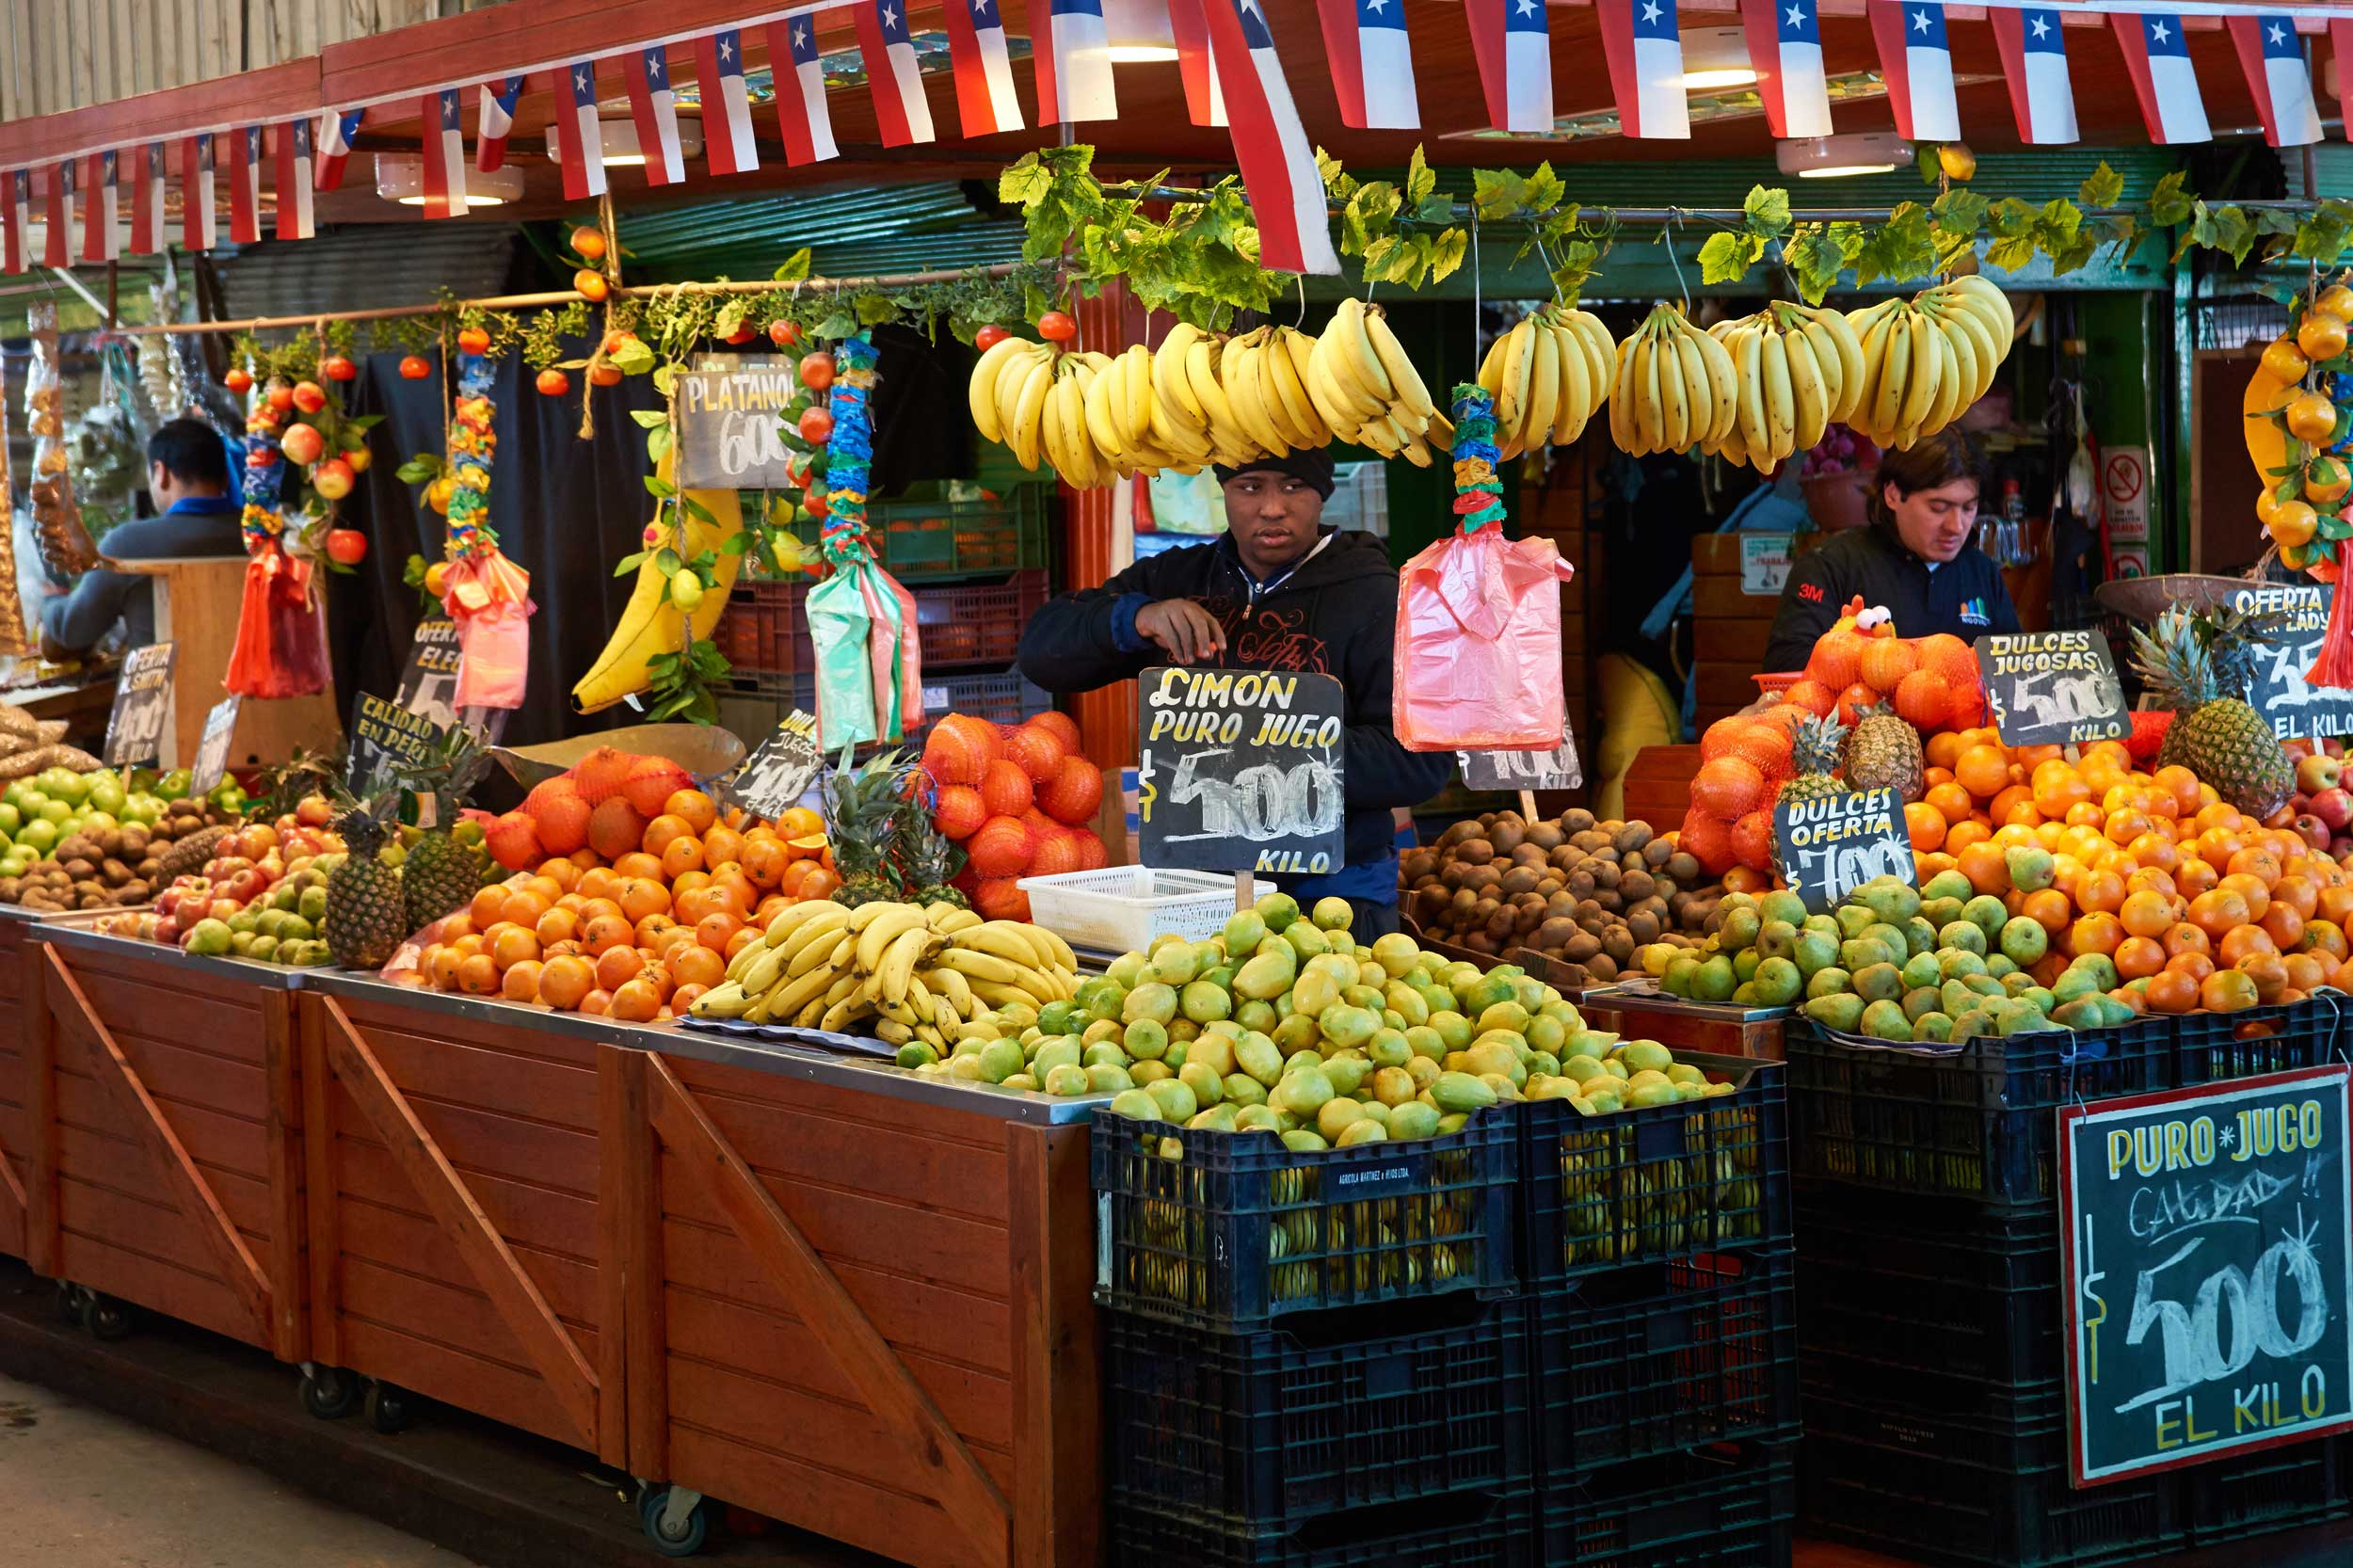 Vendors at a fruit stall piled high with fruit, Santiago Chile